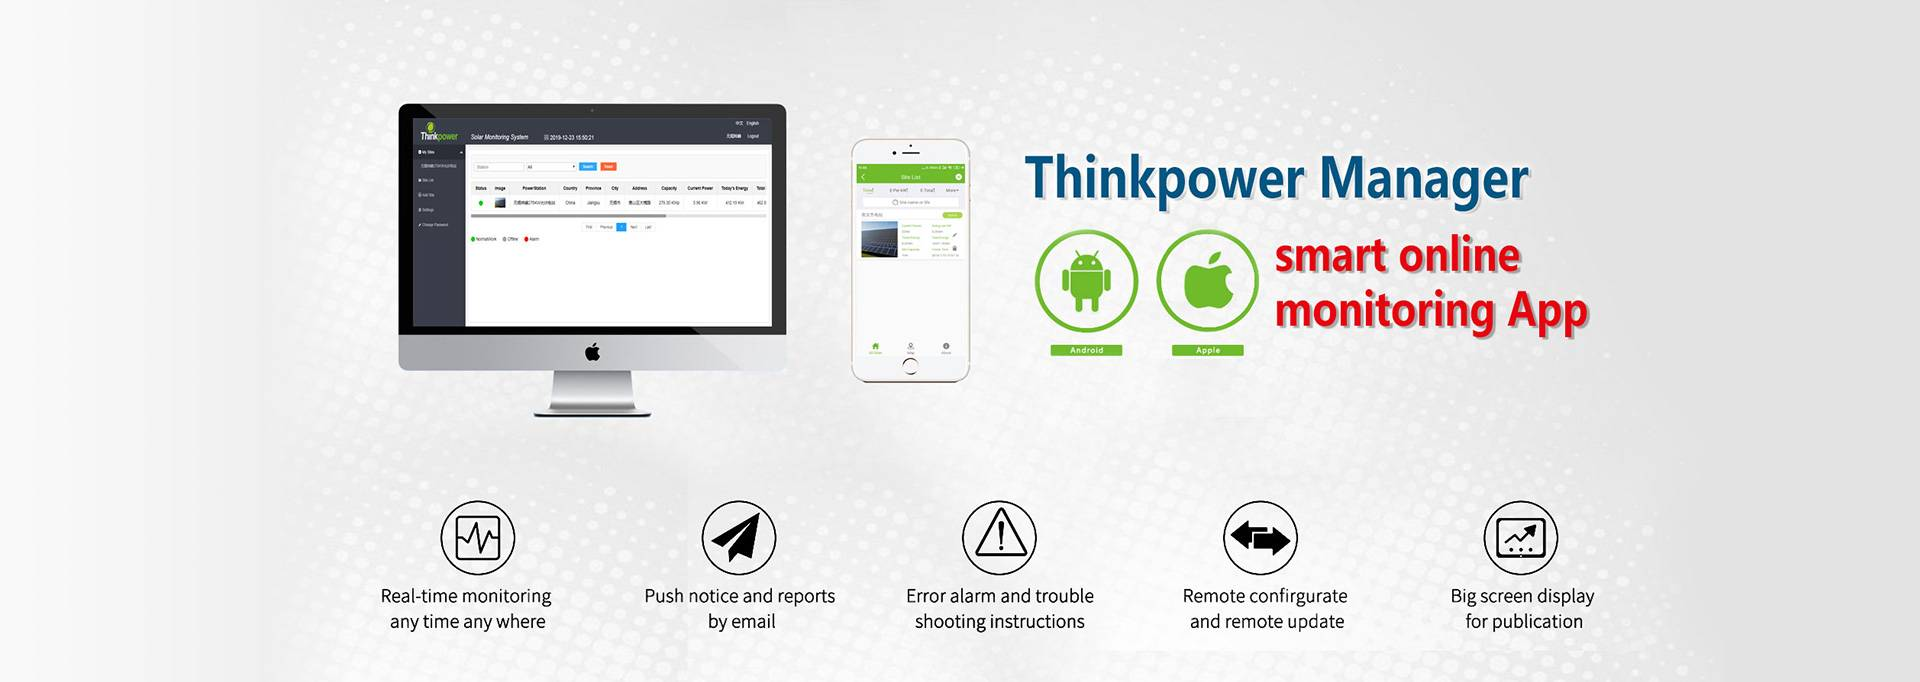 Thinkpower Manager